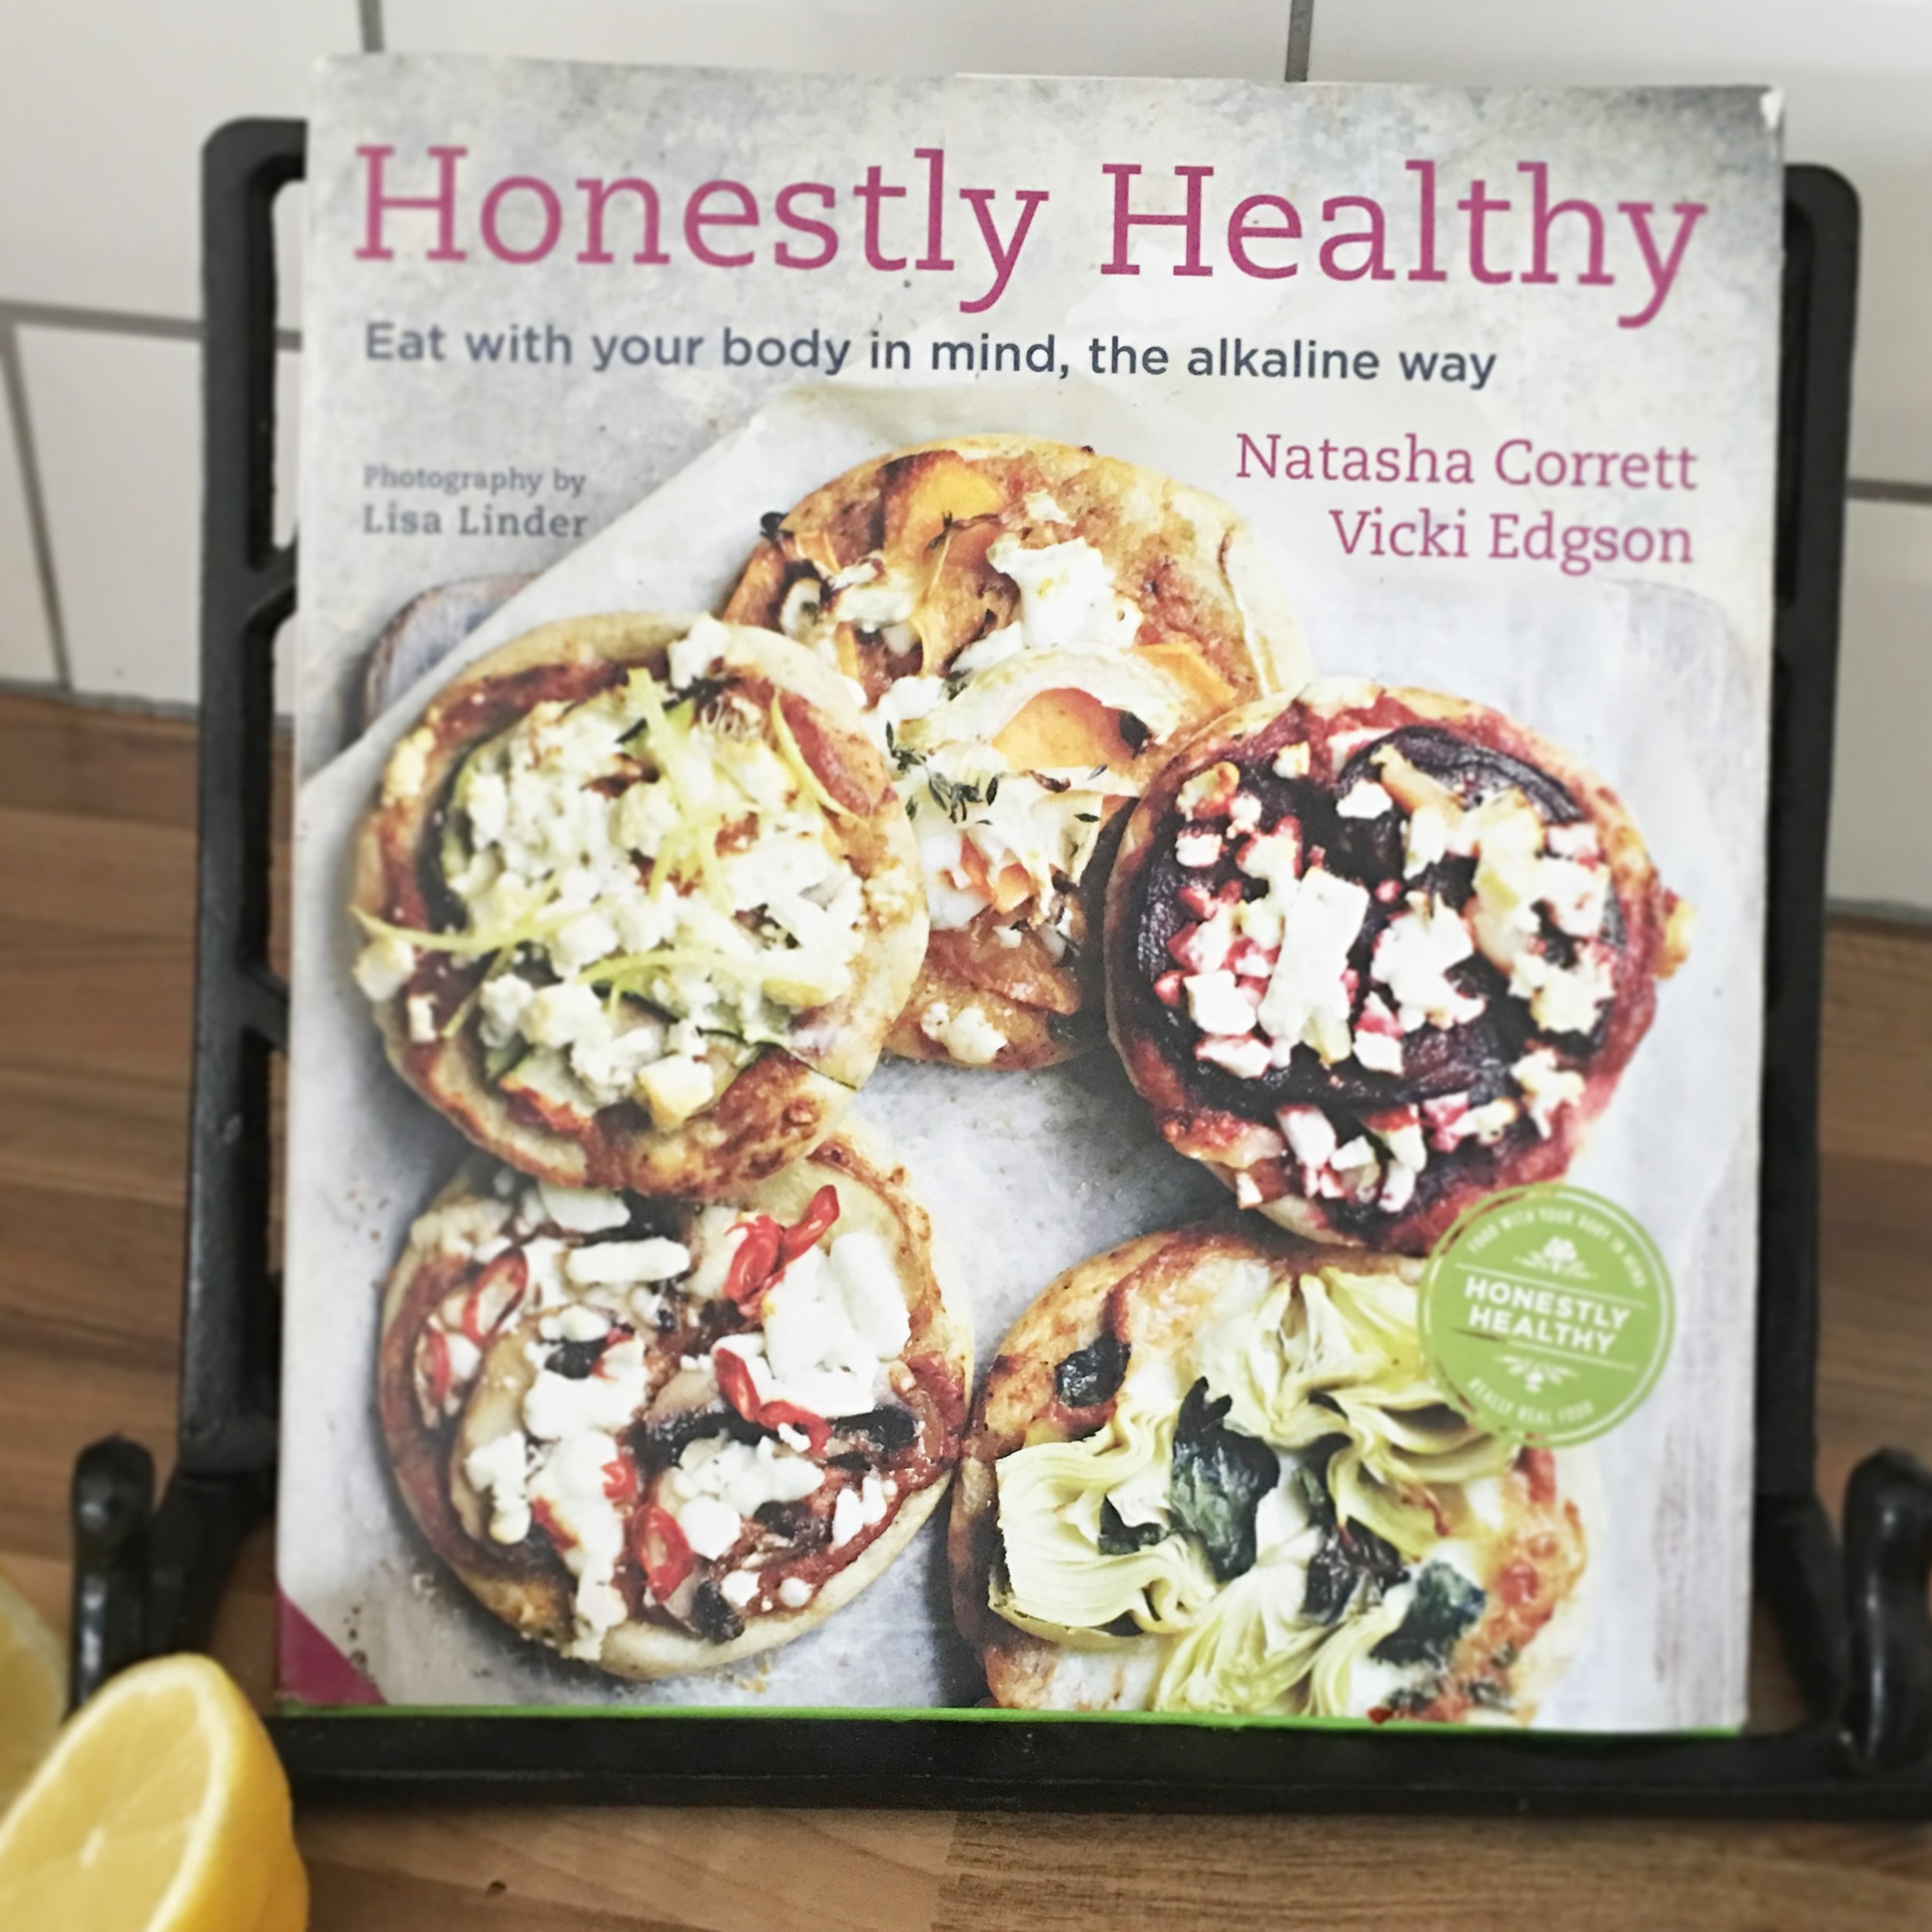 The Preggers Kitchen Honestly Healthy cookbook